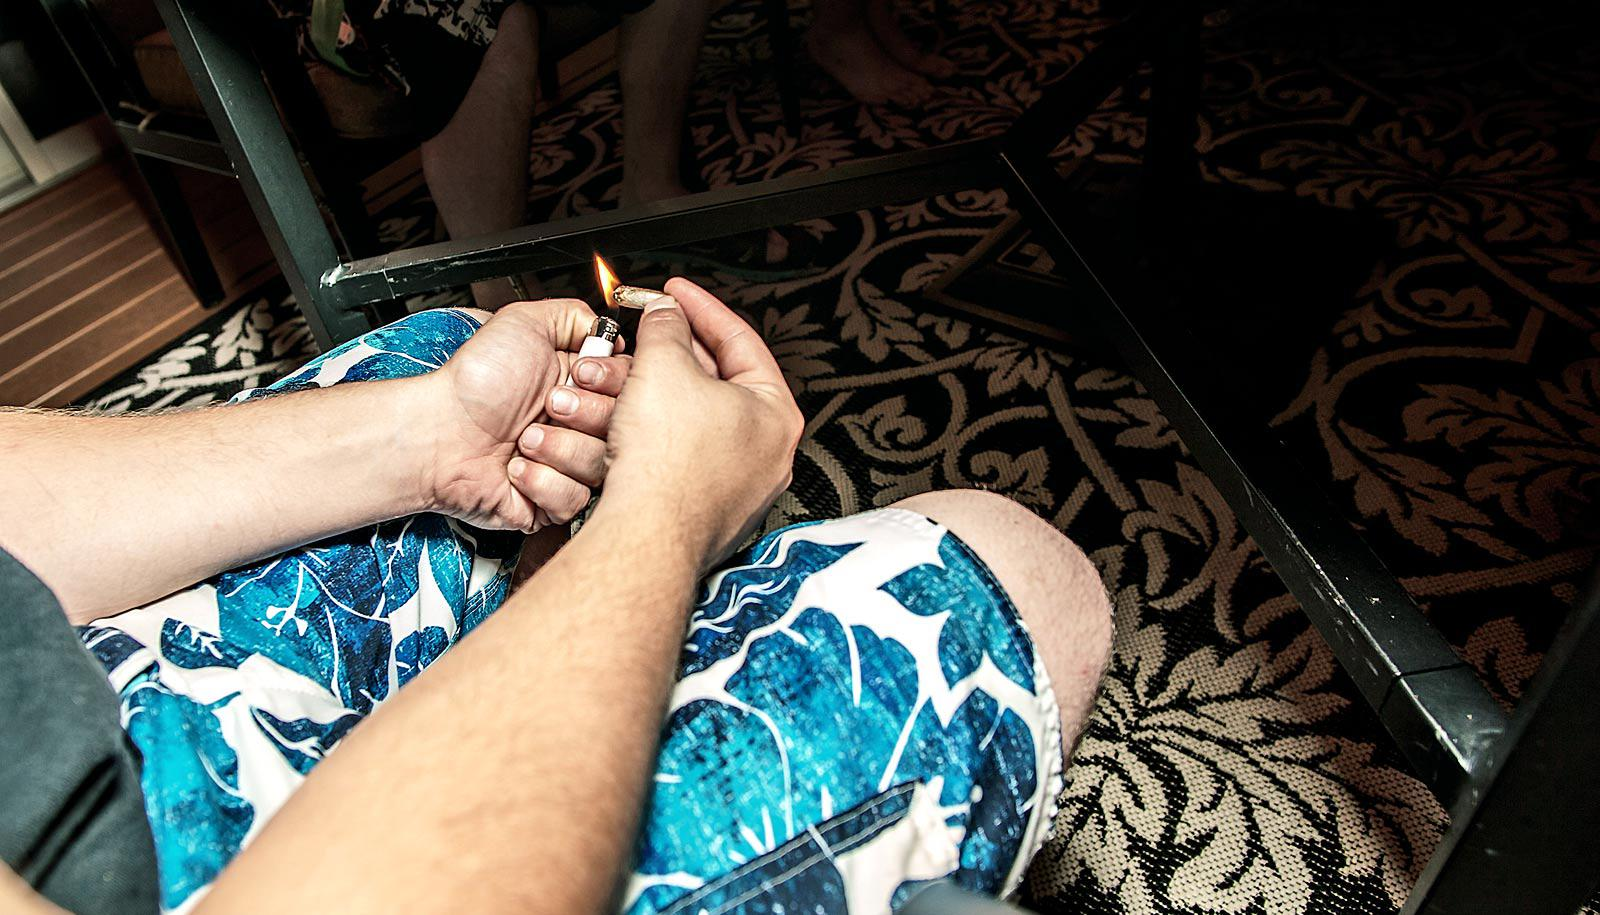 man holds lighter and blunt under table